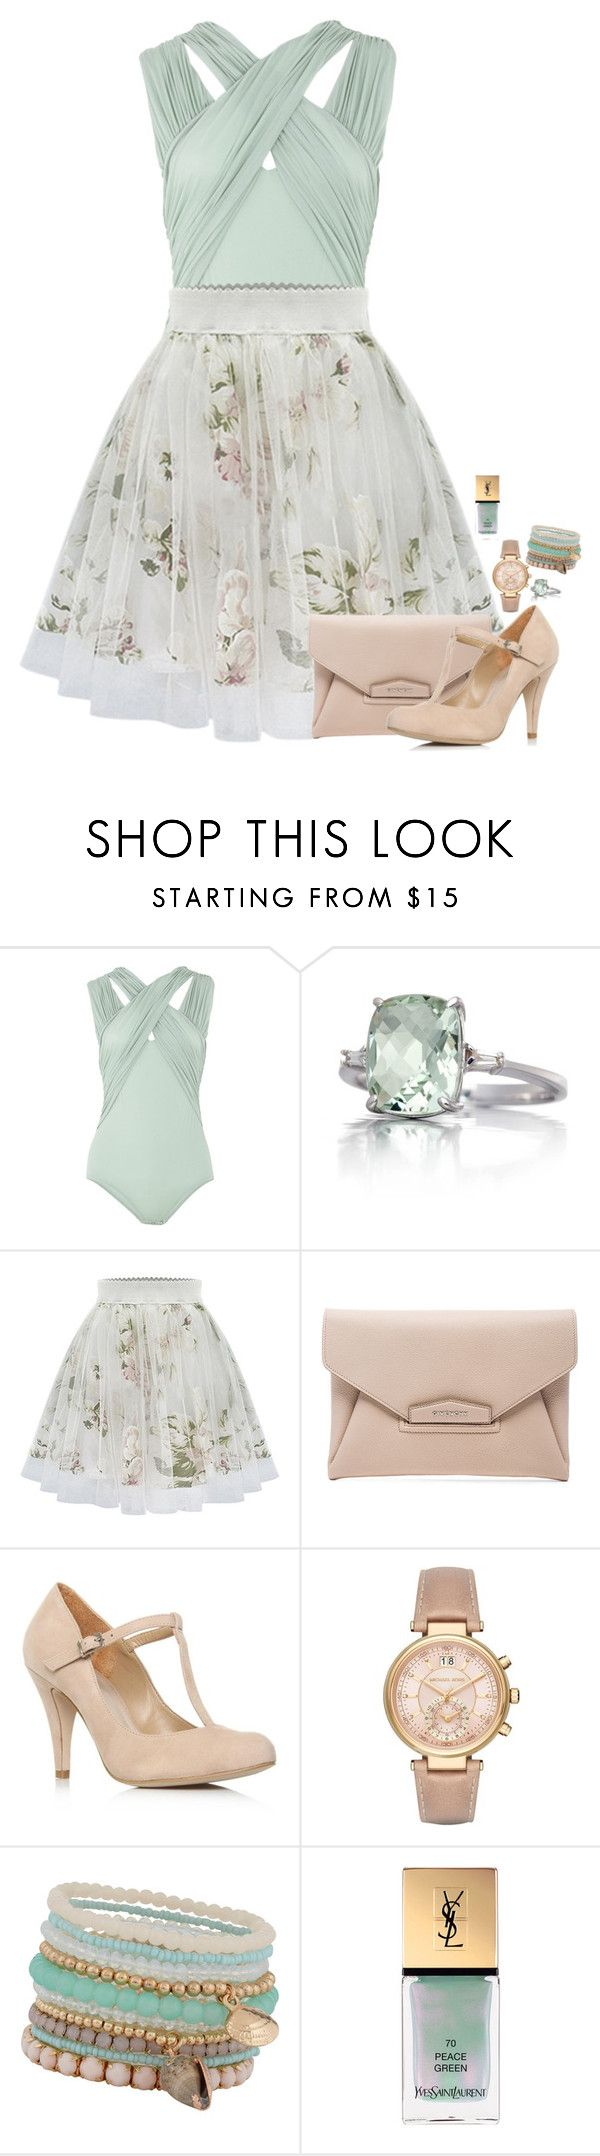 """""""Love me like you"""" by cora97 ❤ liked on Polyvore featuring Zimmermann, Belk & Co., Givenchy, Carvela, Michael Kors, ALDO and Yves Saint Laurent"""